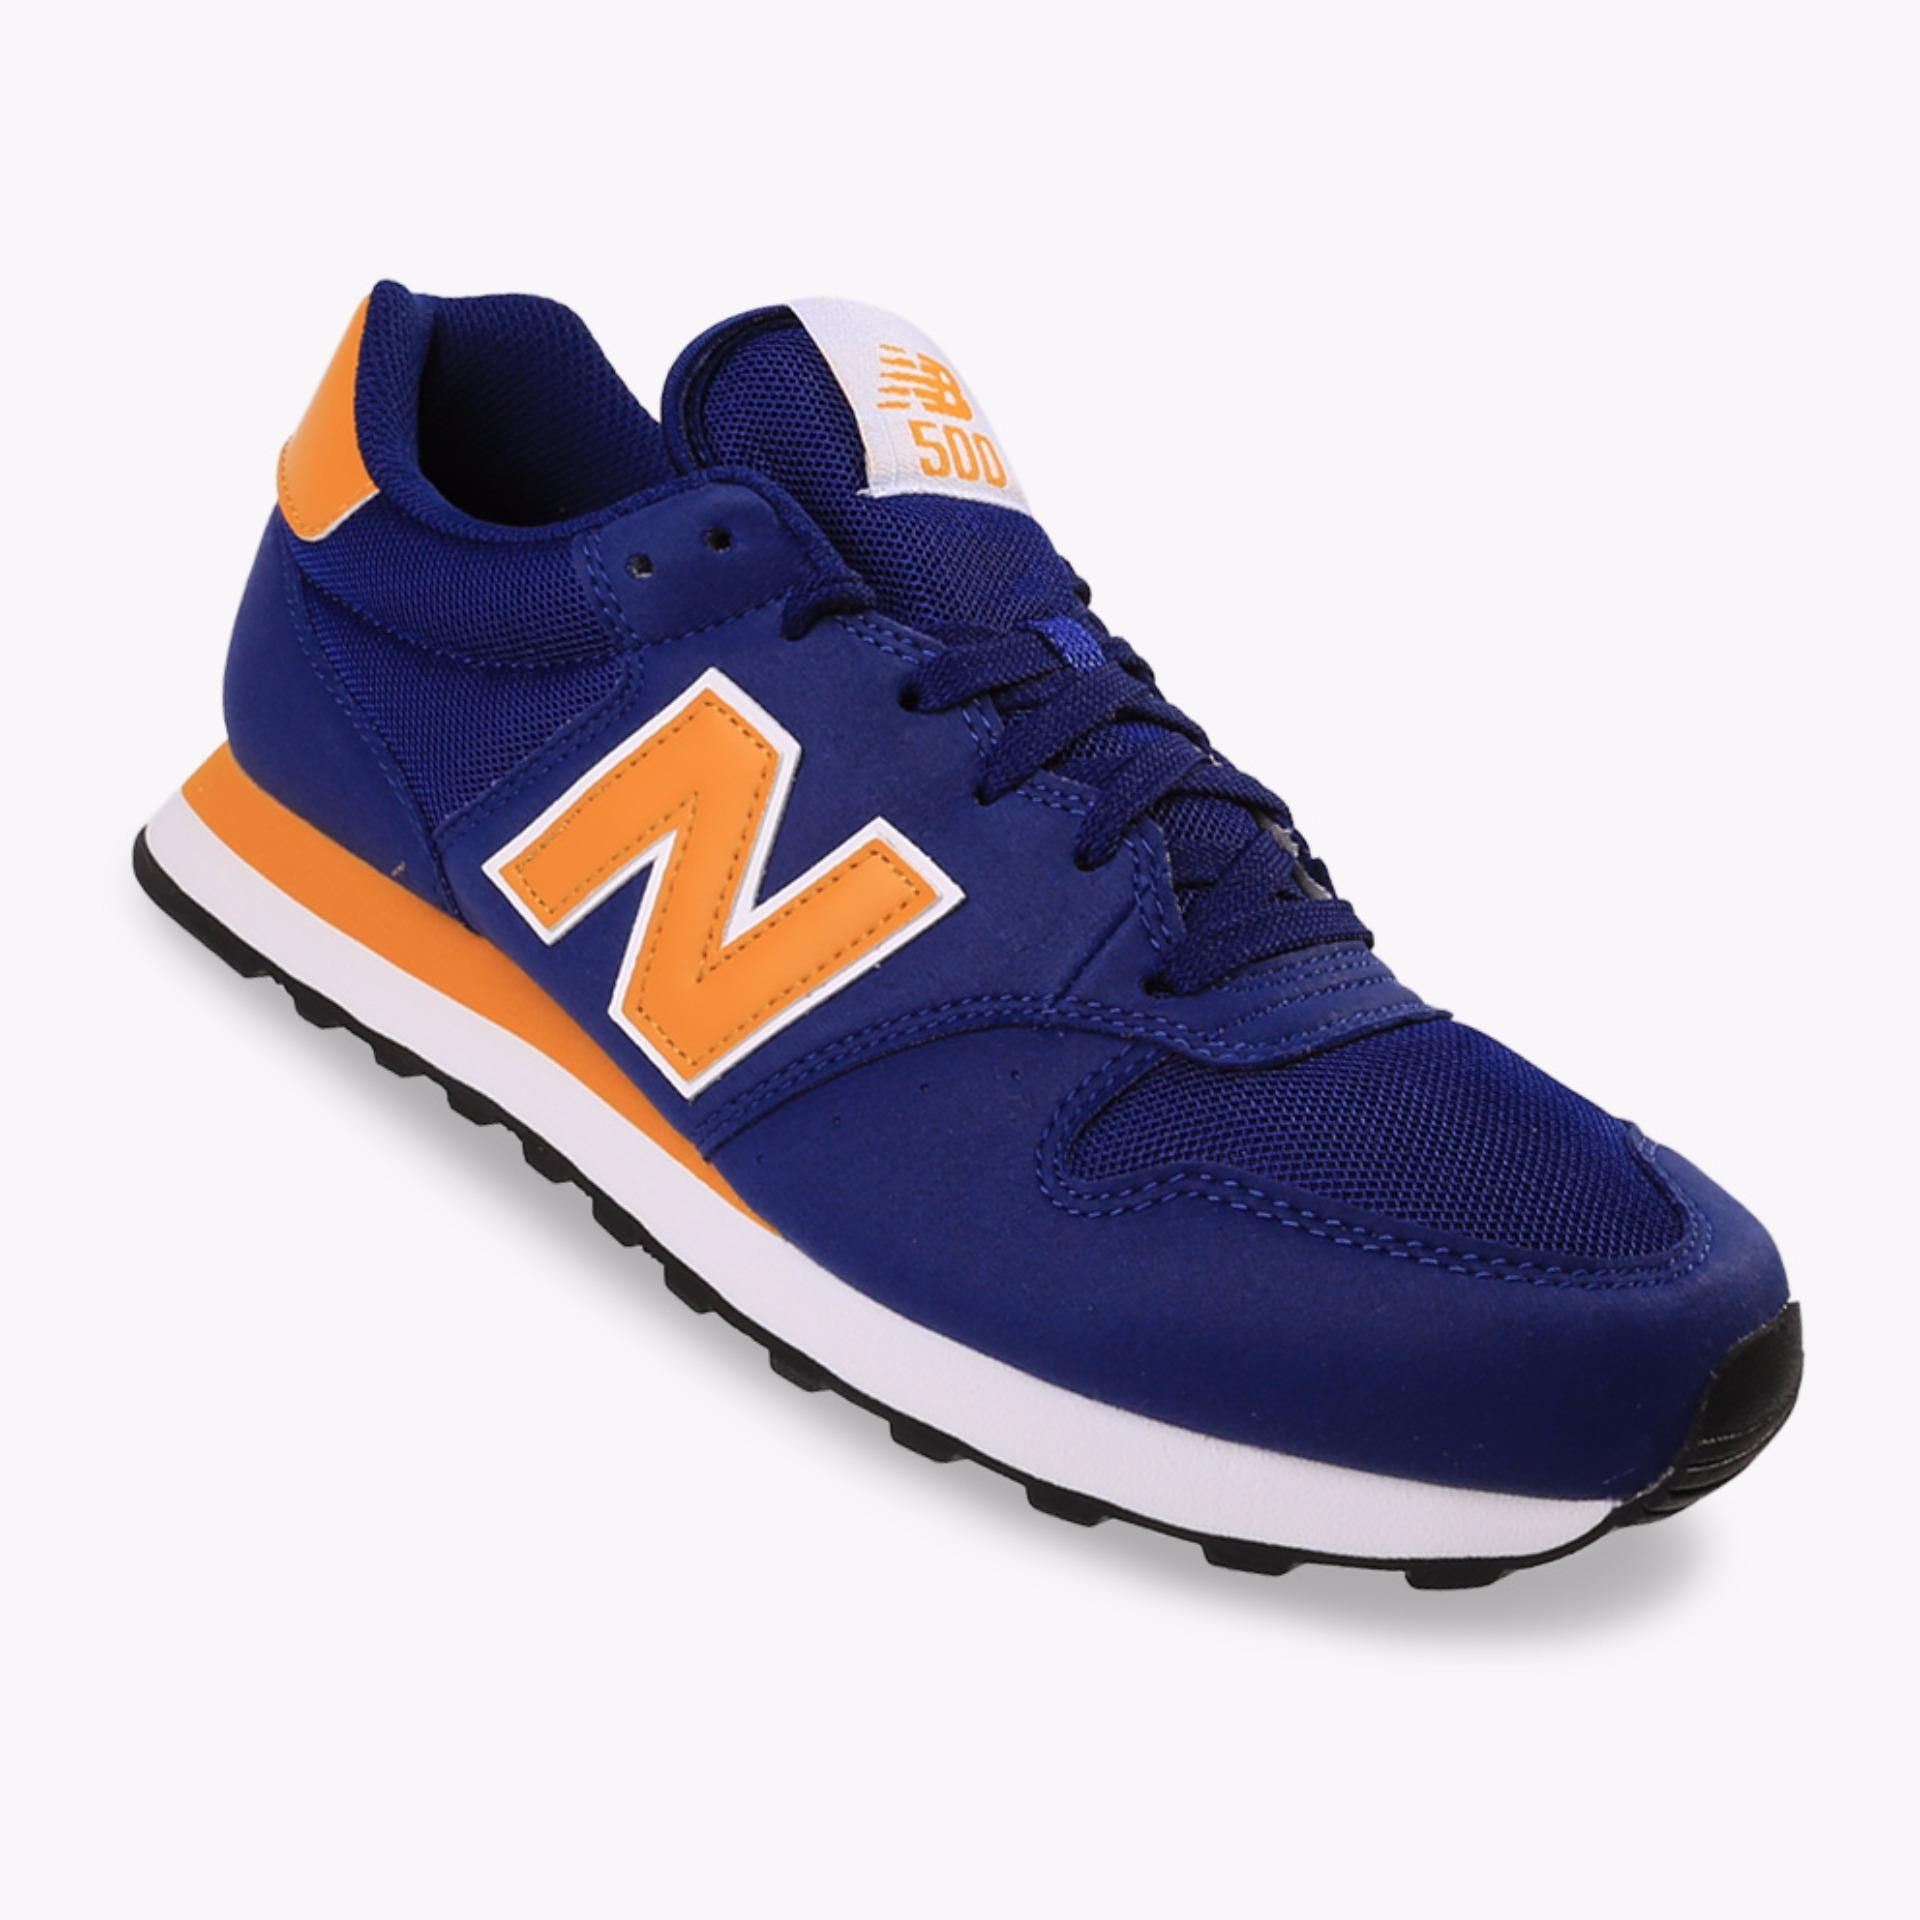 Harga New Balance Gm500 Men S Lifestyle Shoes Biru Di Indonesia